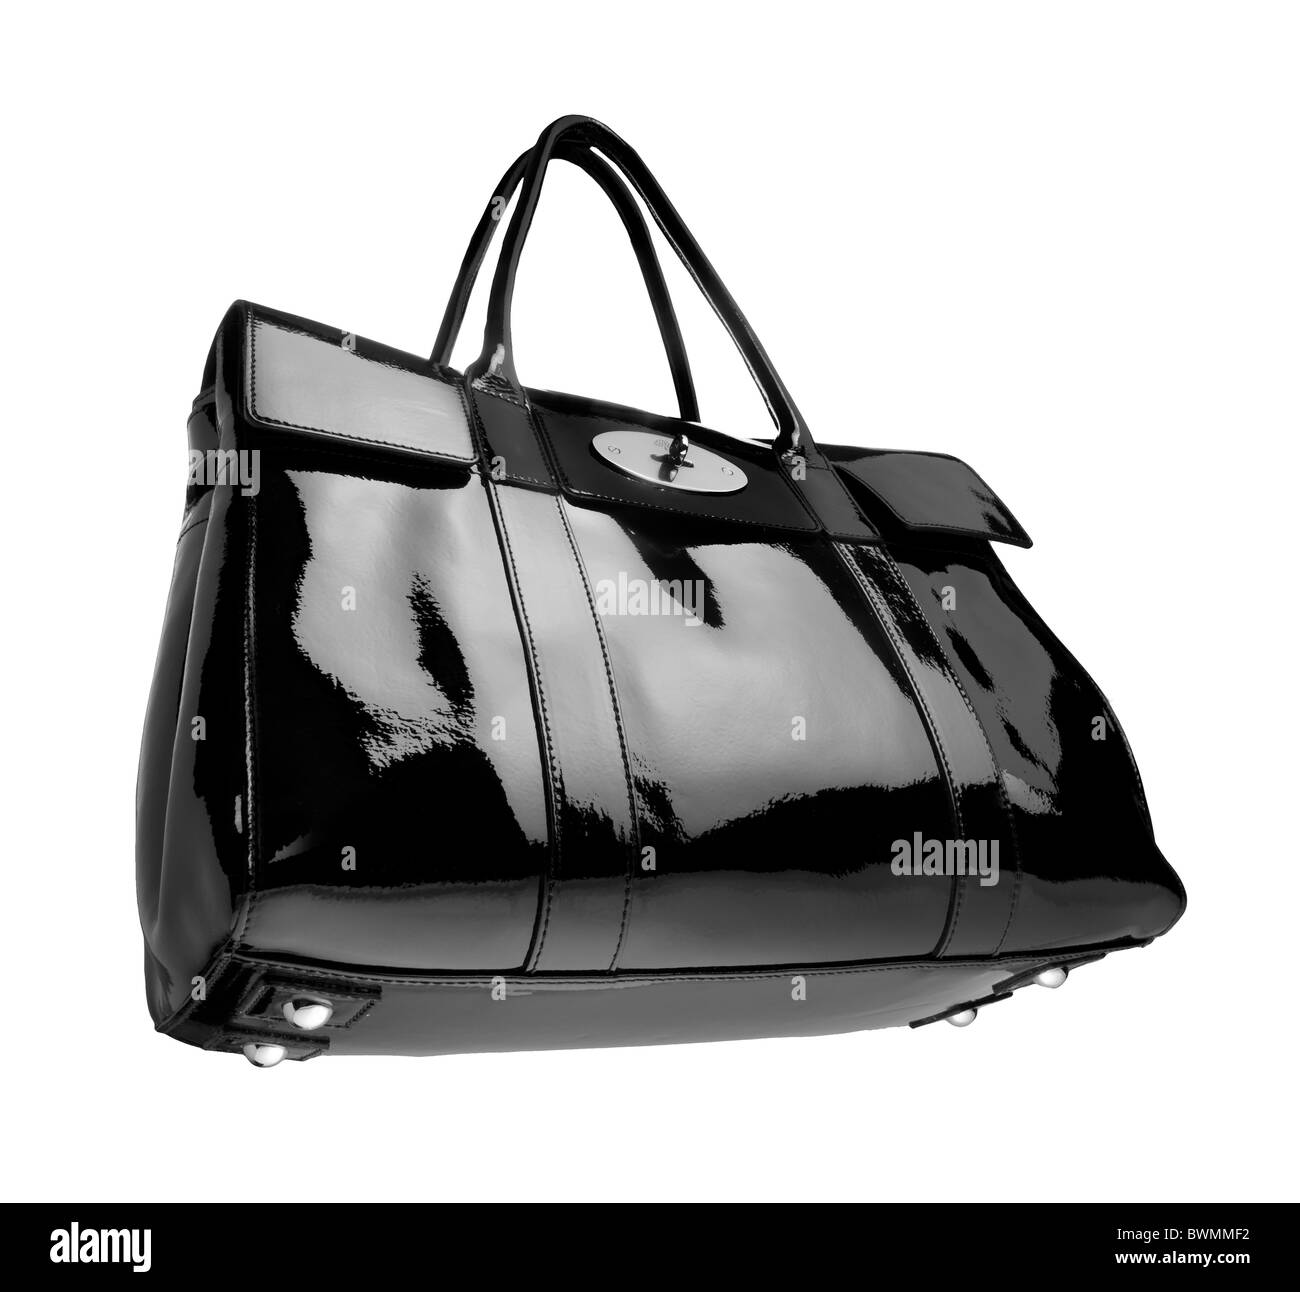 1b4d25148d79 Mulberry handbag in black patent shiny soft leather Stock Photo ...